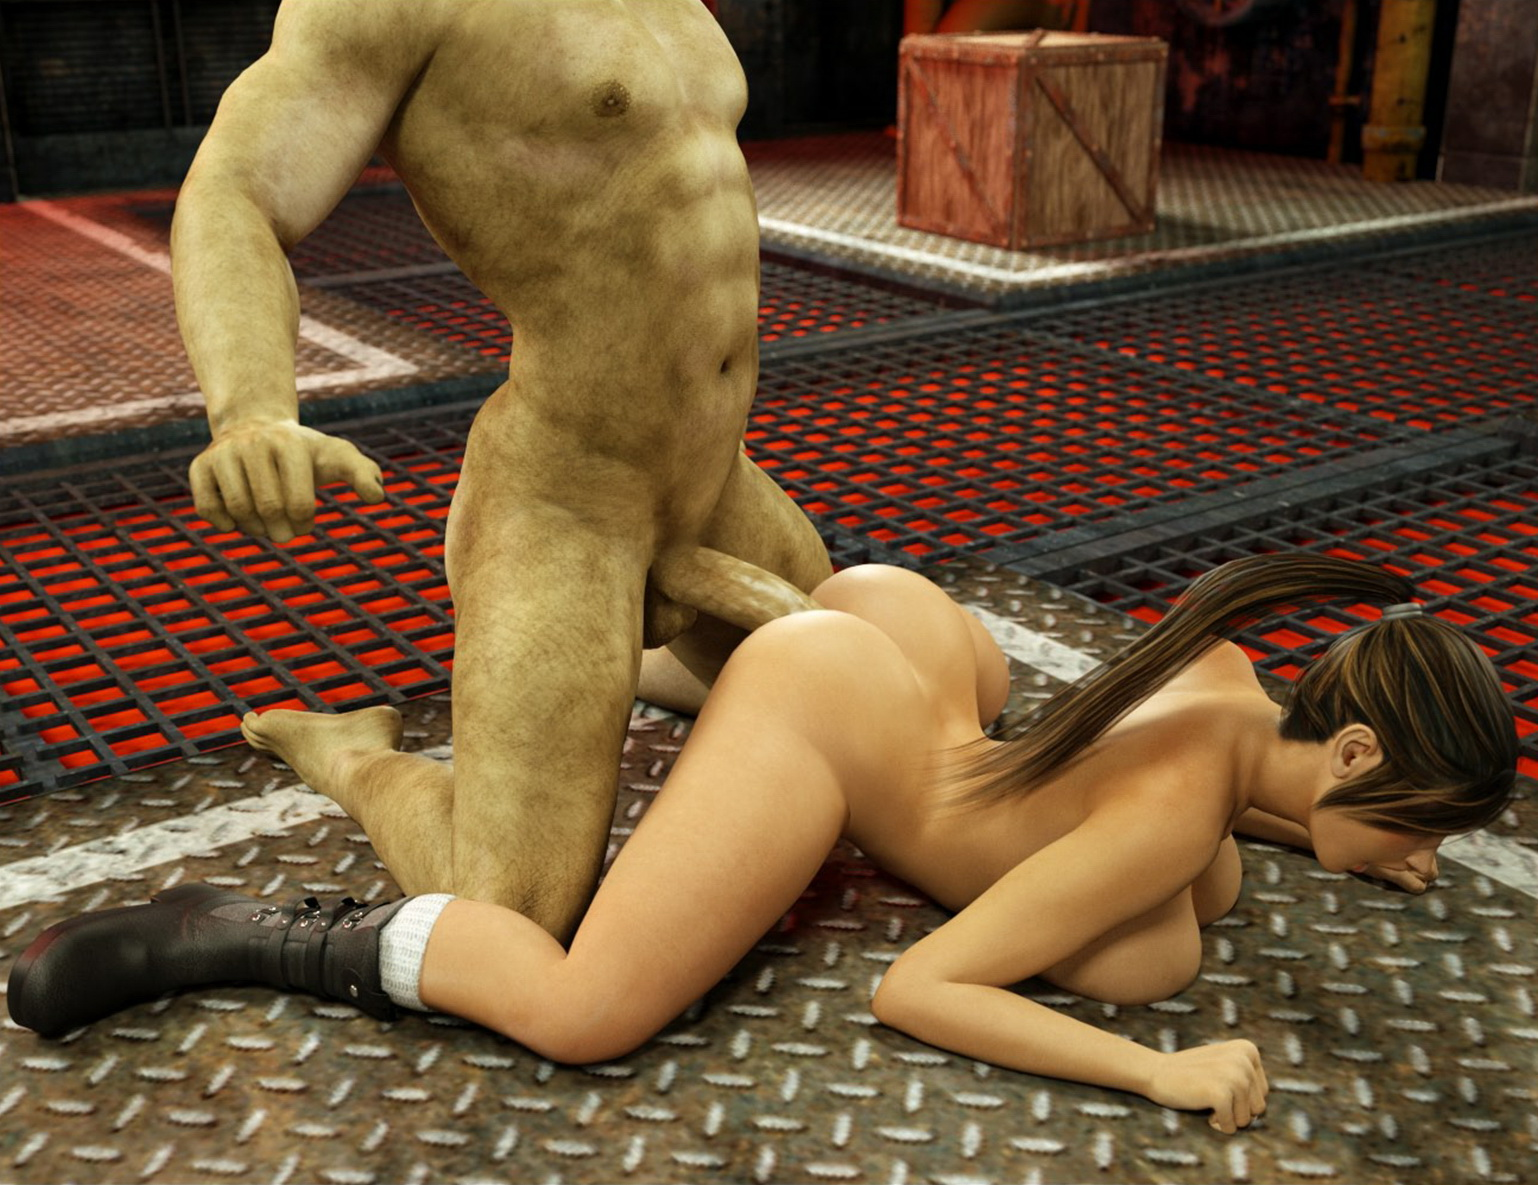 3d monster sex movie free download adult image